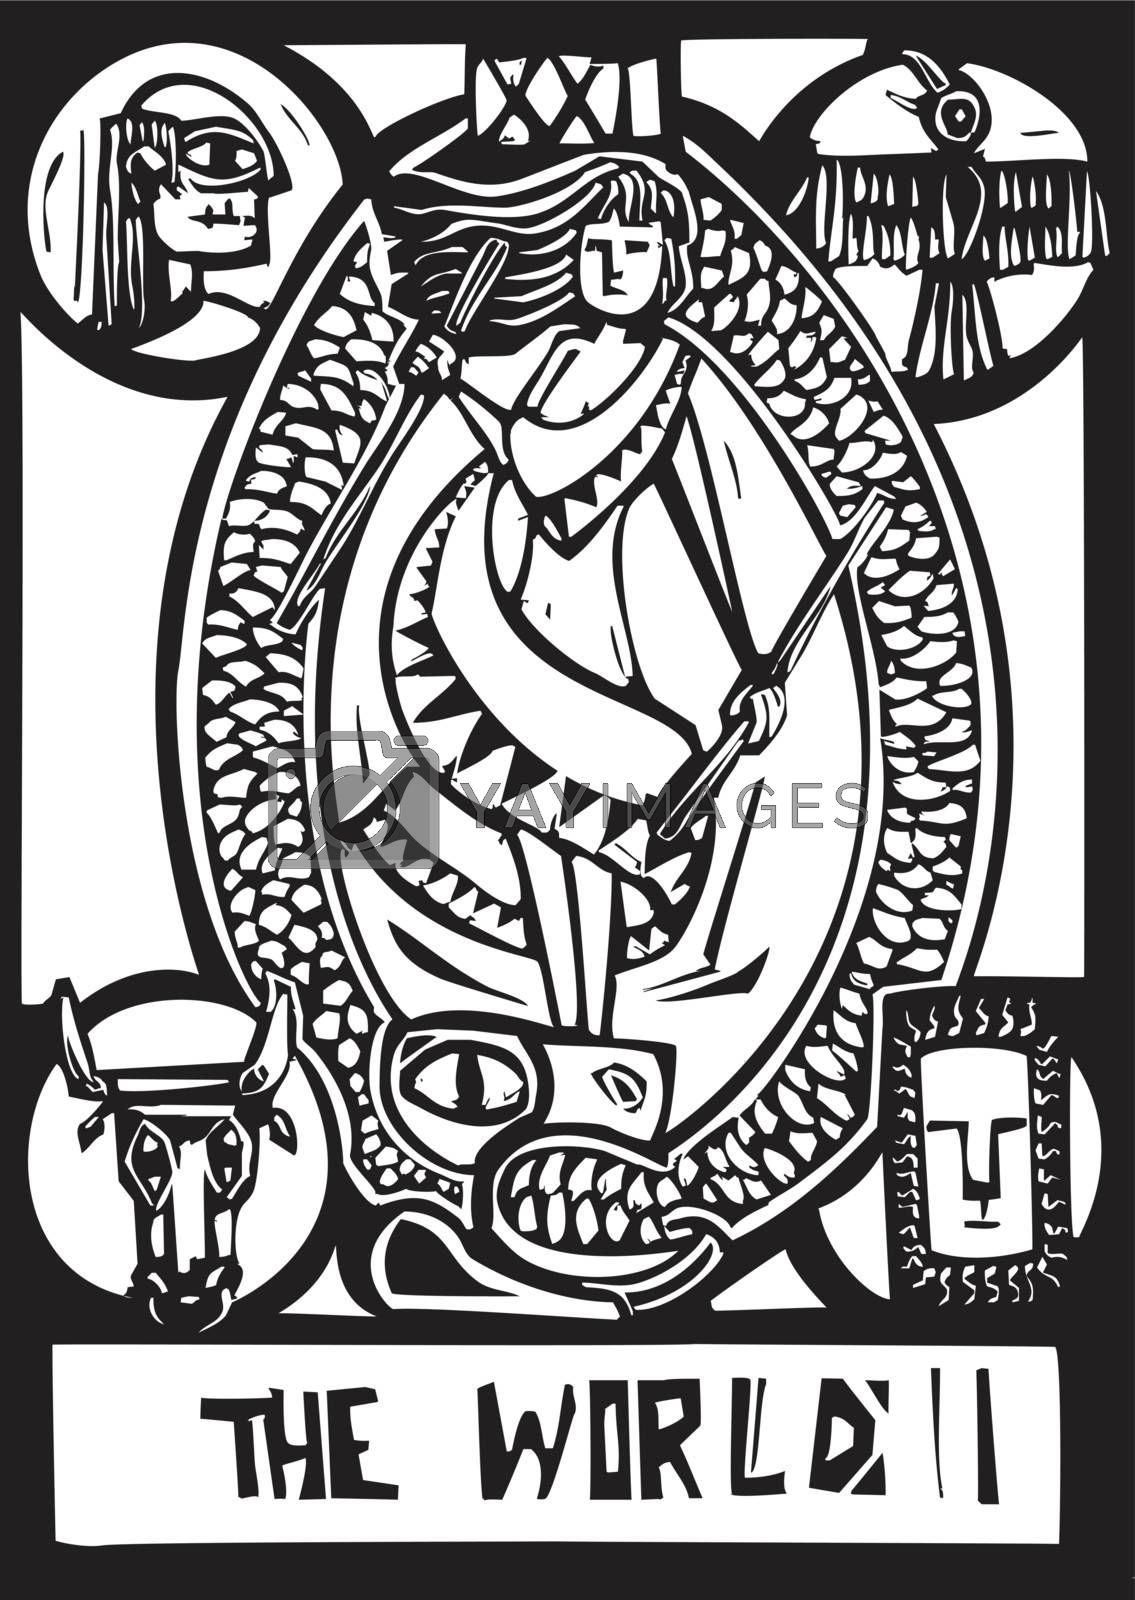 Woodcut expressionist style image of the Tarot Card for the World